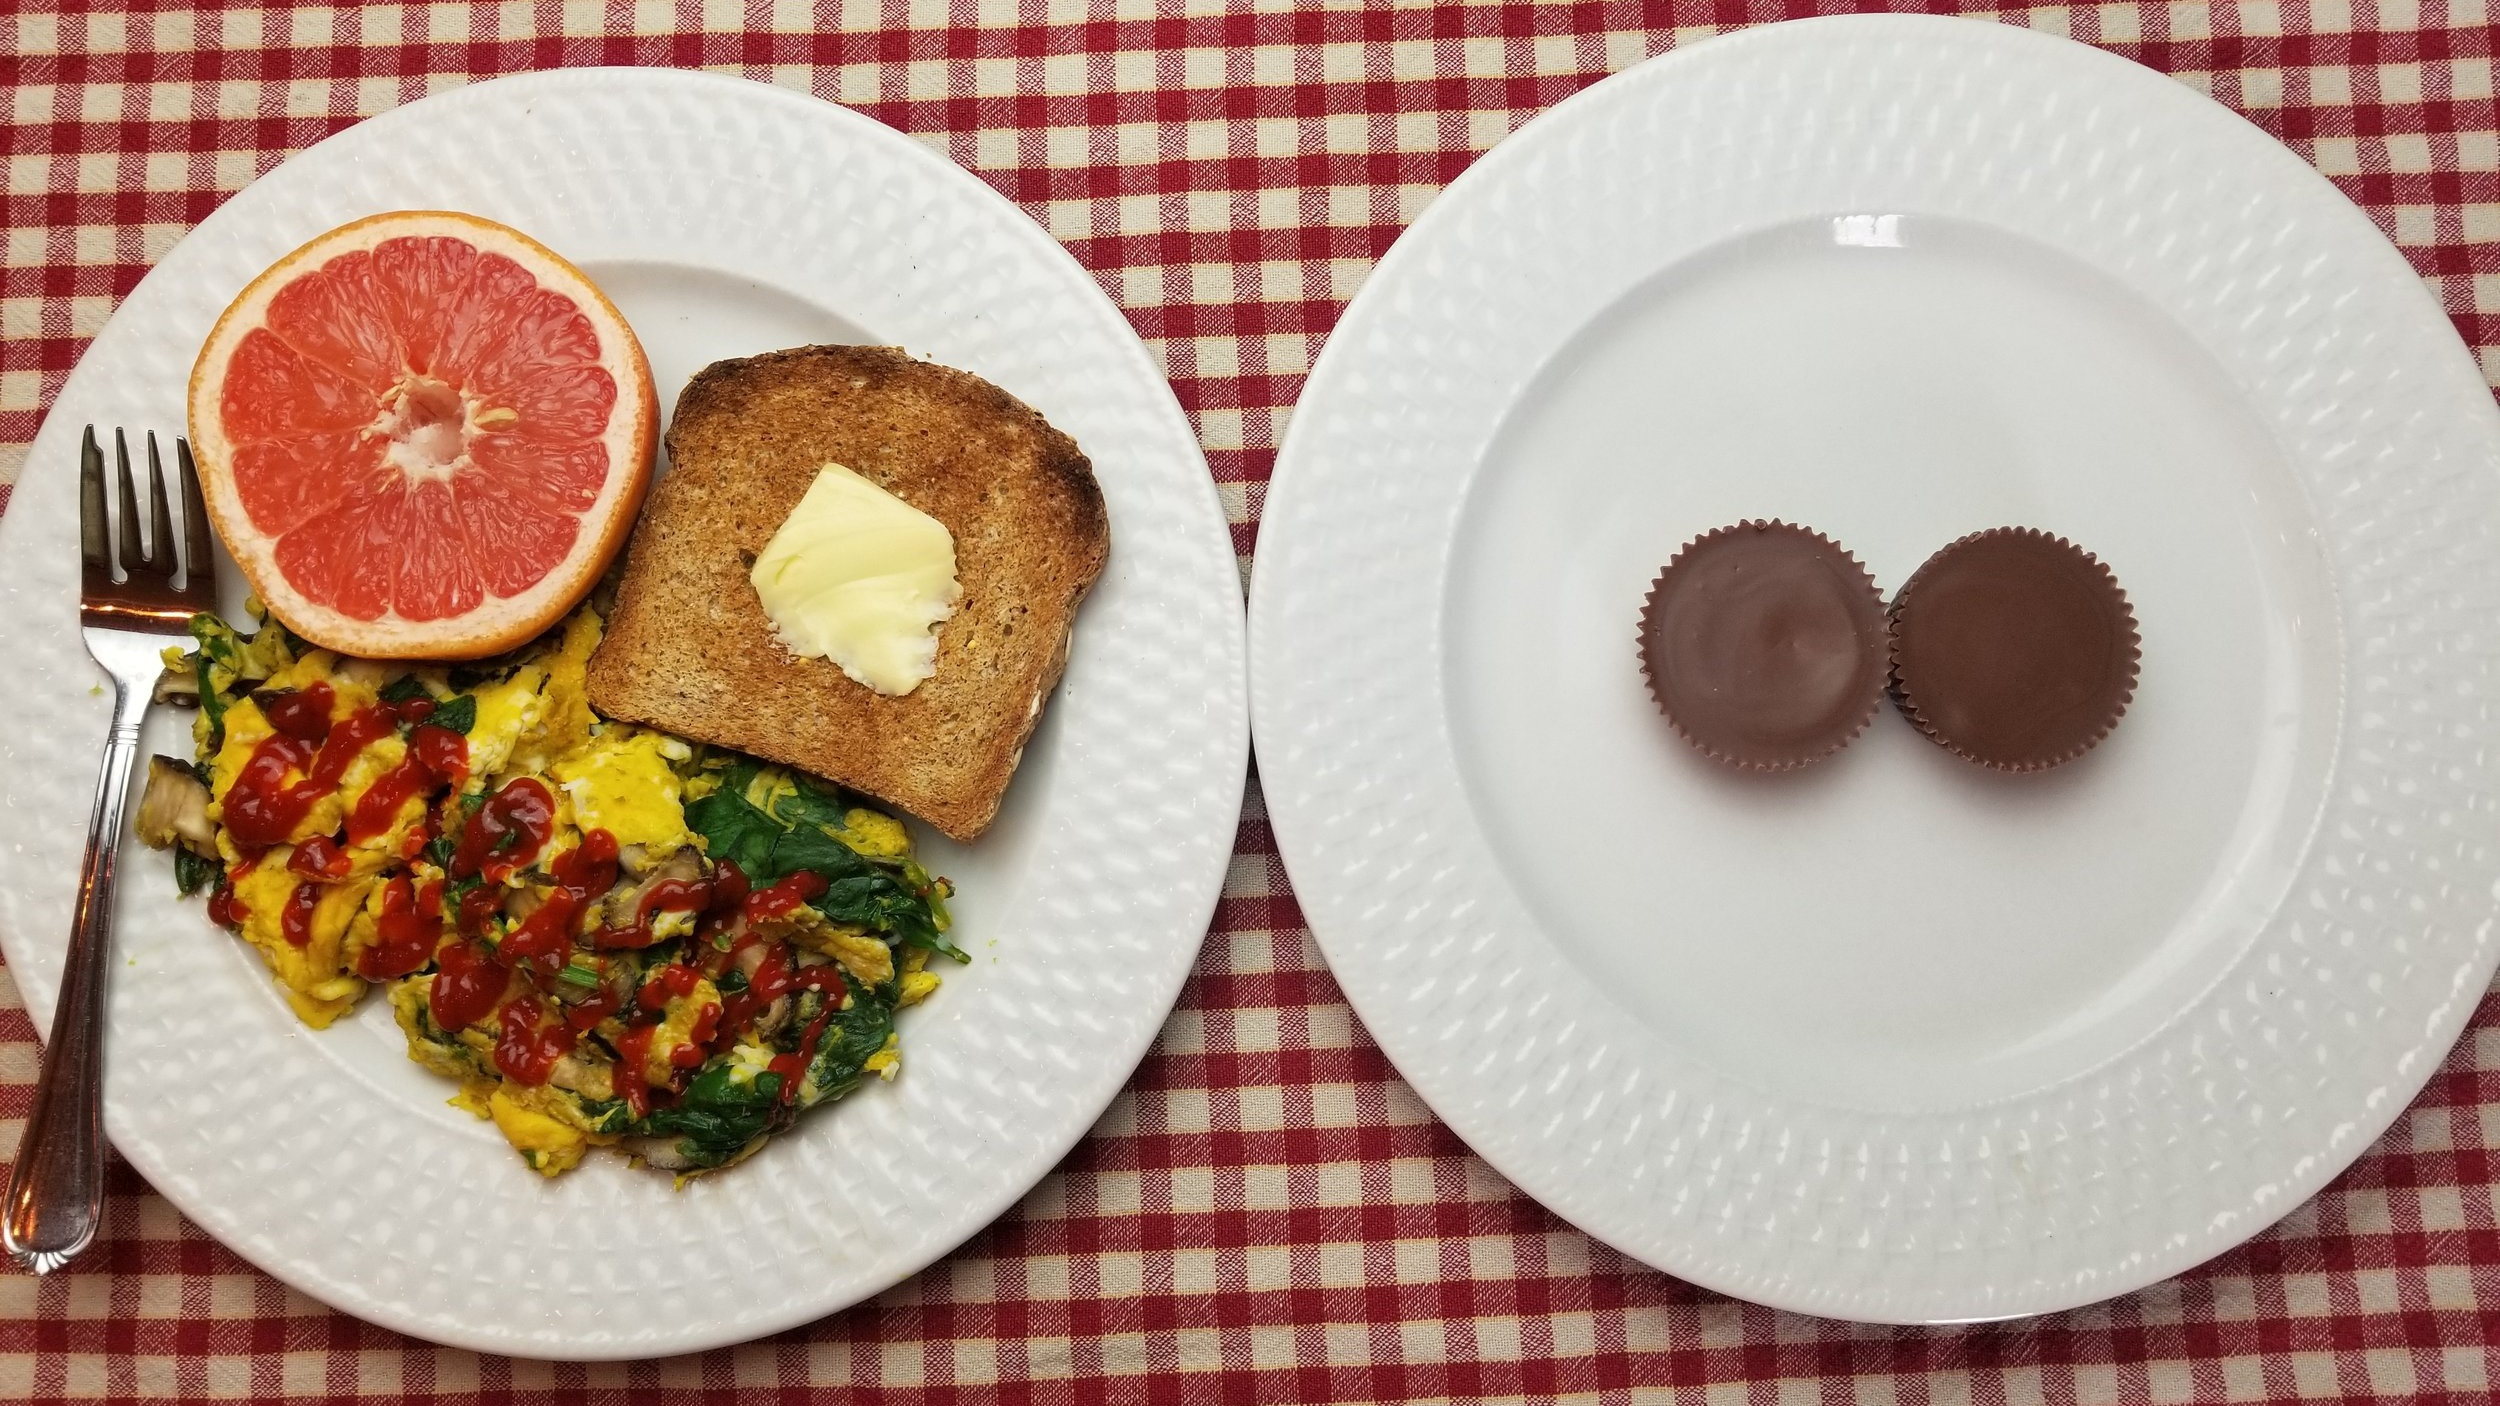 The plate on the left contains about 400 calories of food. The plate on the right also contains about 400 calories of food.